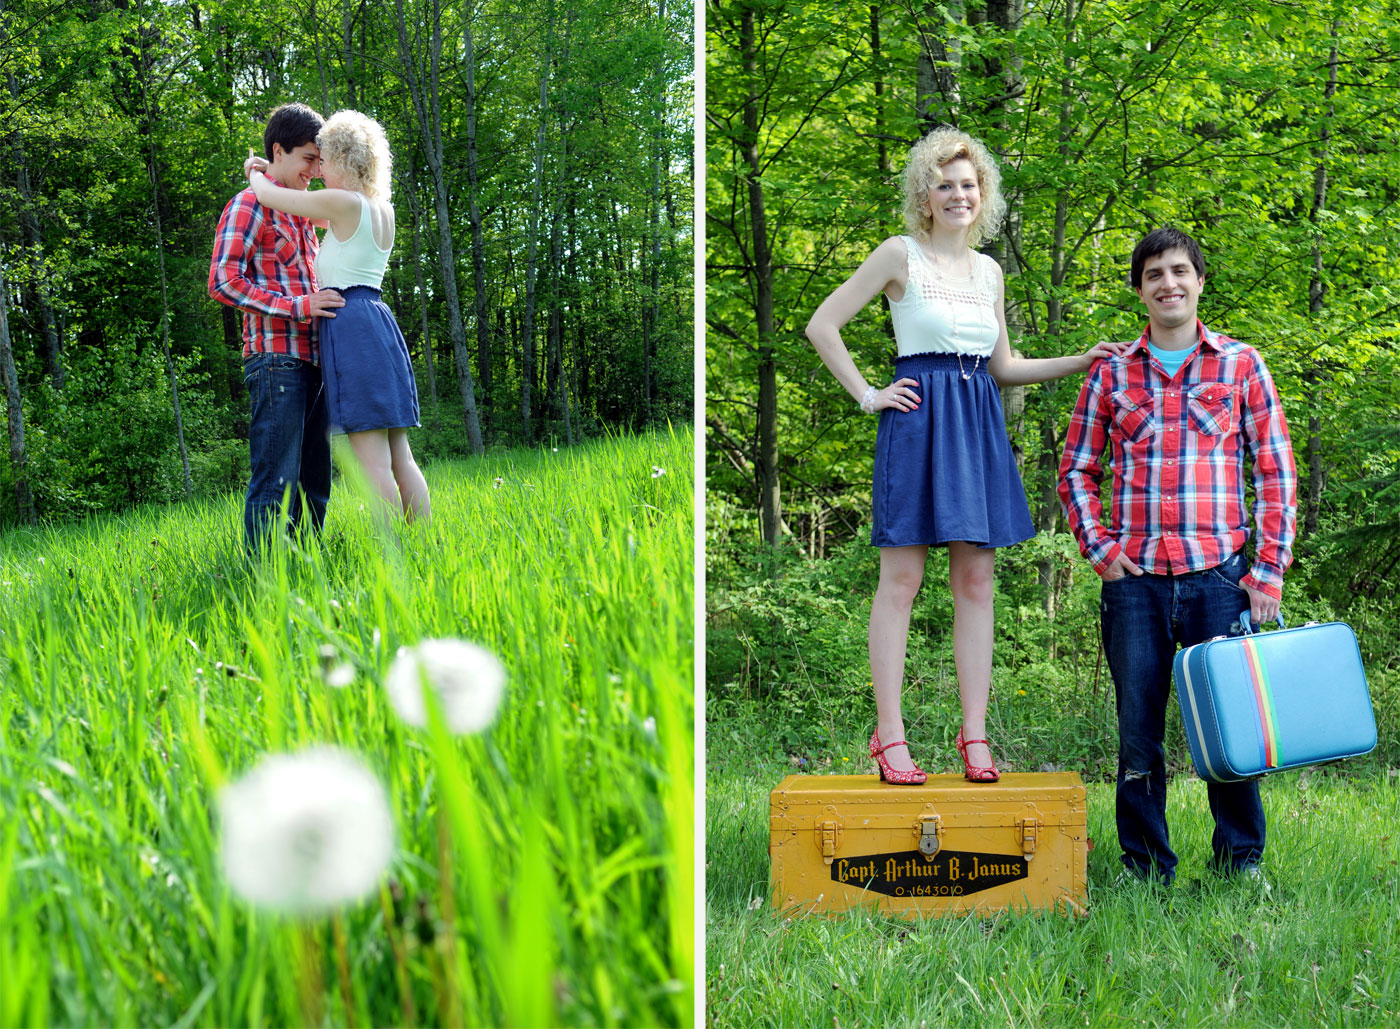 kaylen-aaron-engagement-country-st-clair-michigan-stunning-intimate-rustic-travel-8